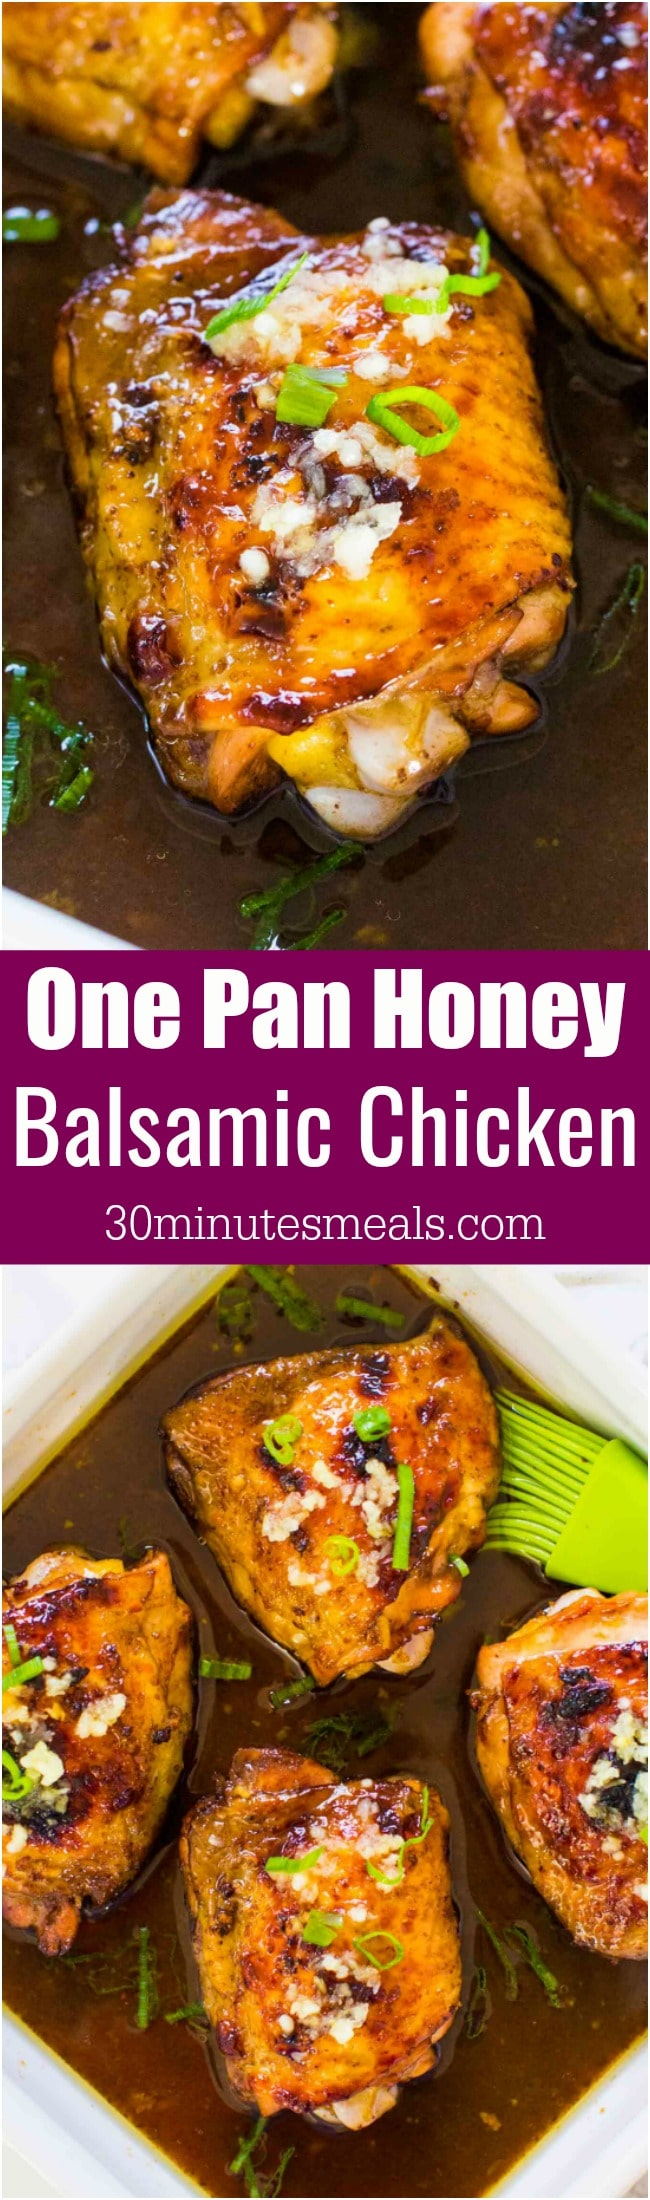 Honey Balsamic Chicken is very juicy and tender, coated in a tasty sweet and slightly tangy sauce, made in one pan in 30 minutes only!